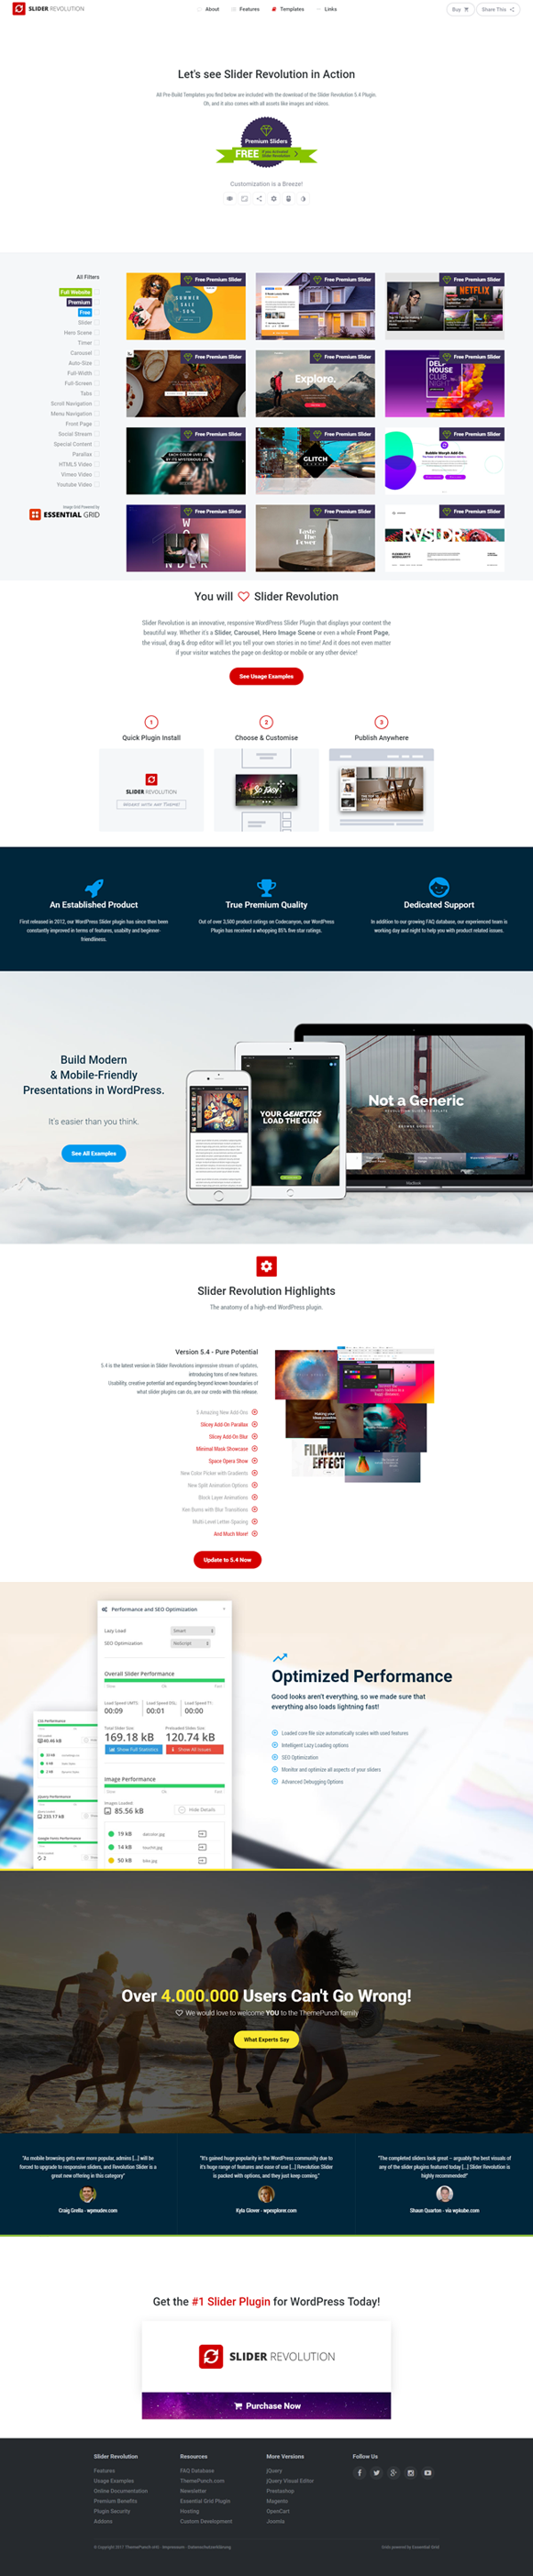 Templates - Slider Revolution WordPress Plugin